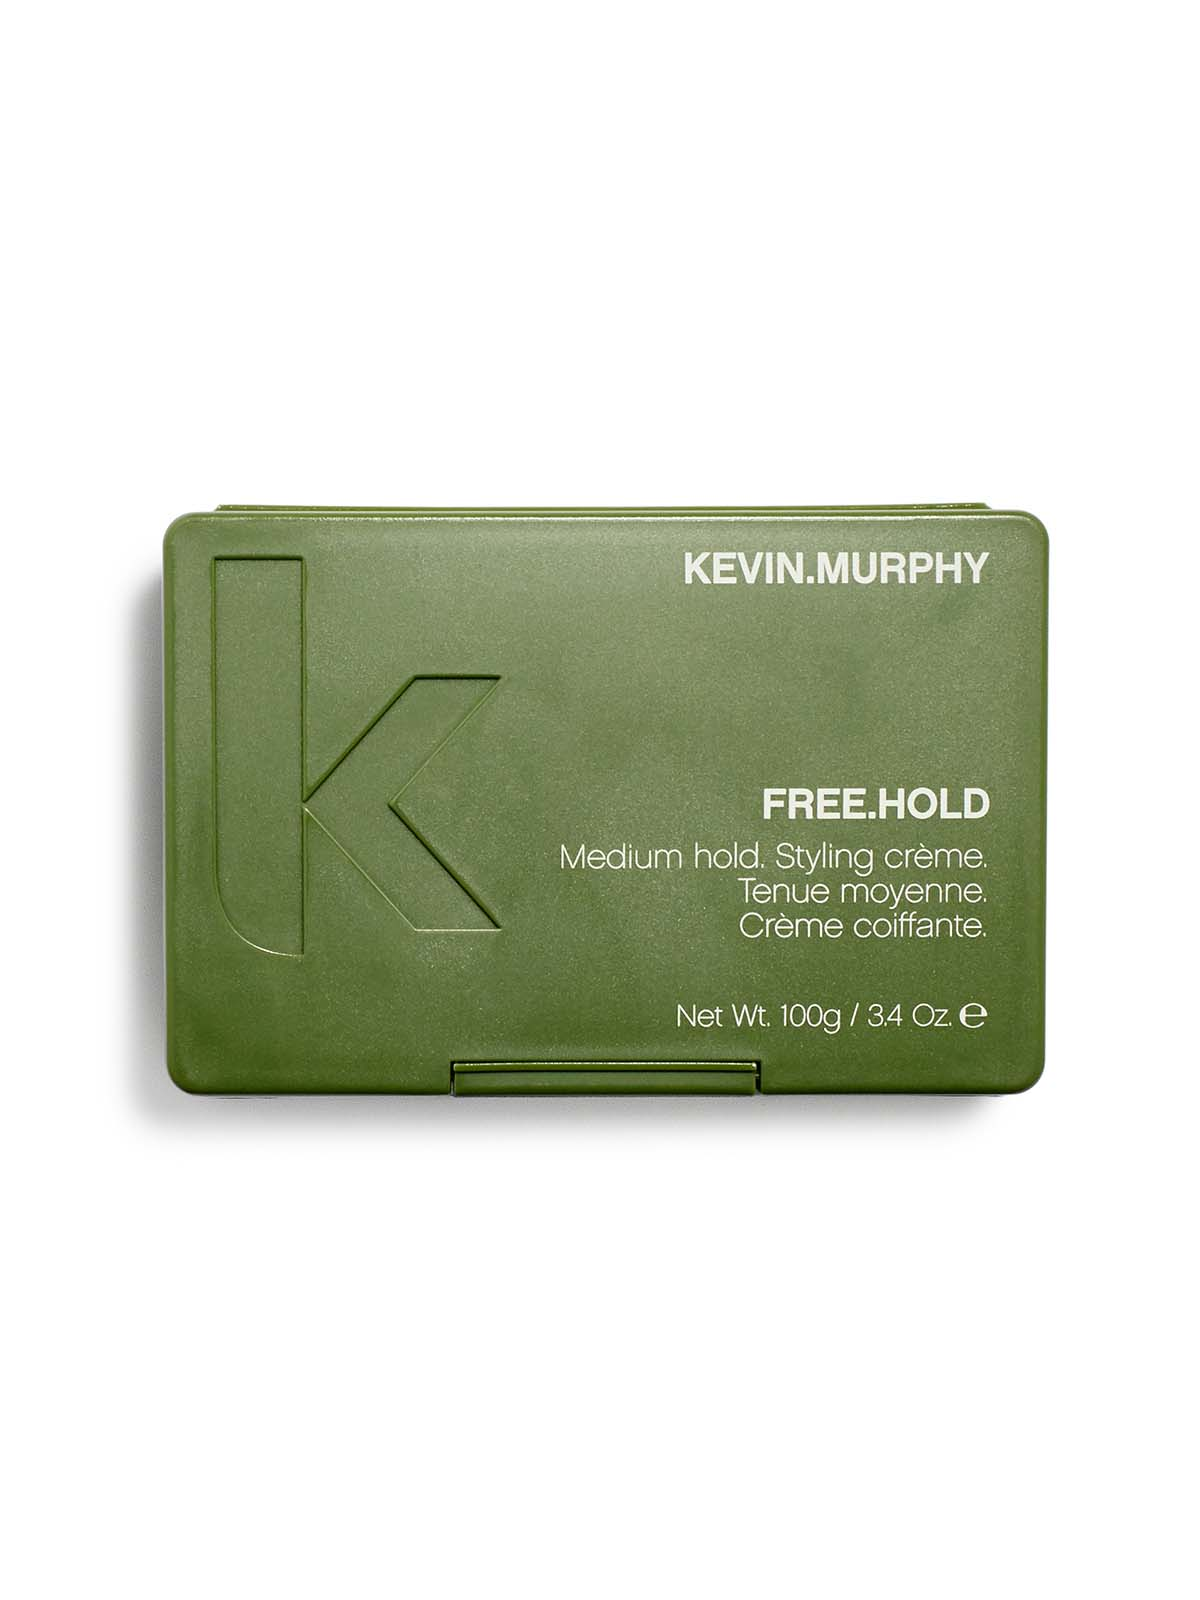 KEVIN.MURPHY FREE.HOLD